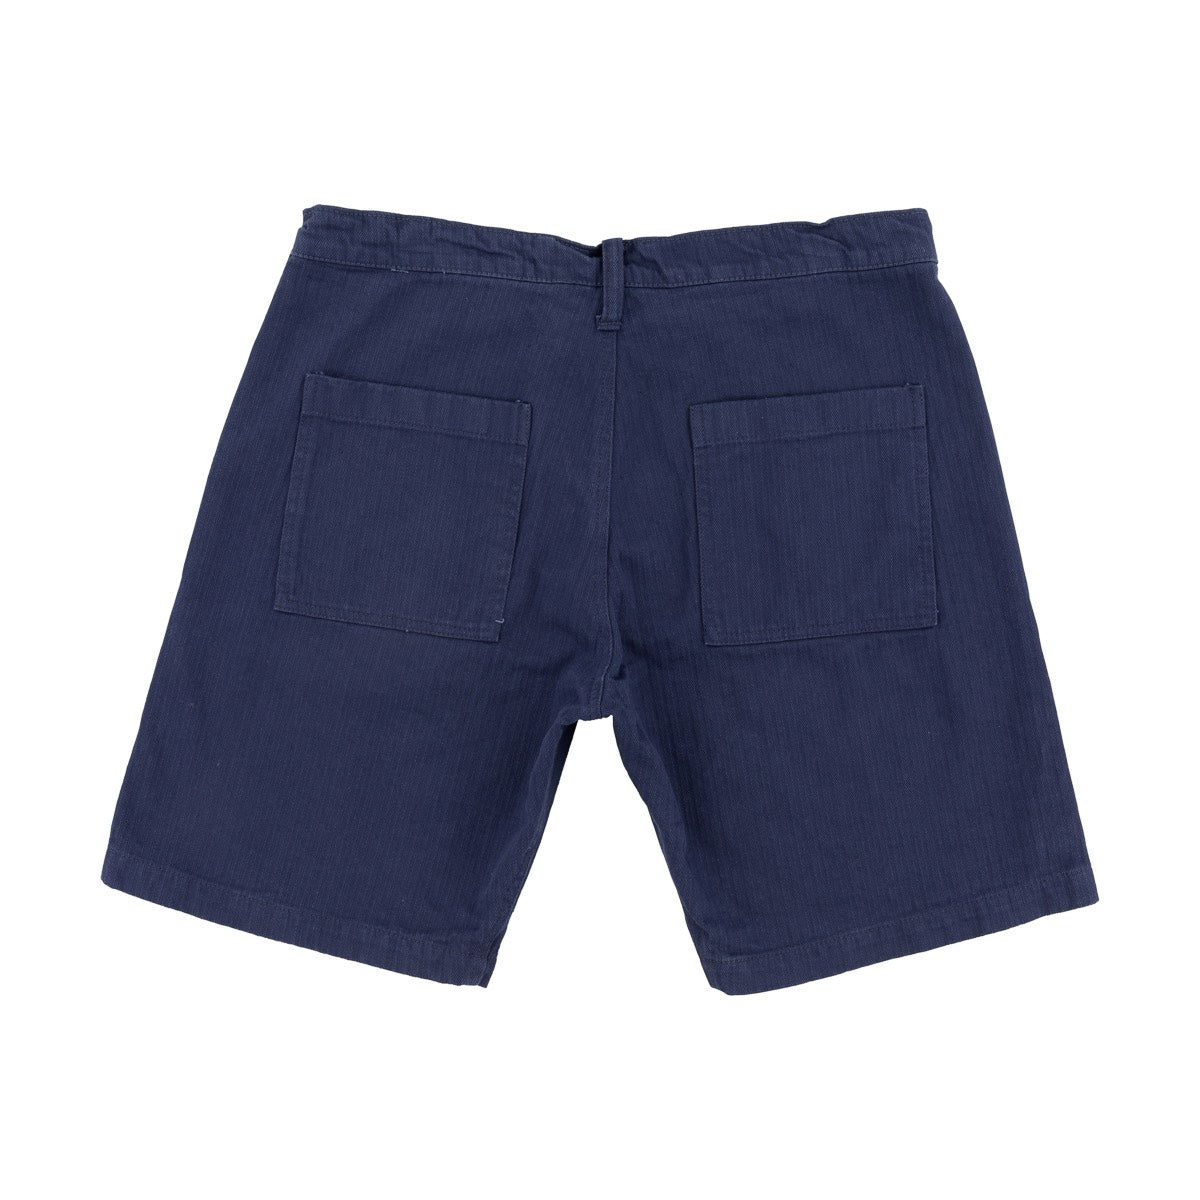 HBT Advisor Shorts